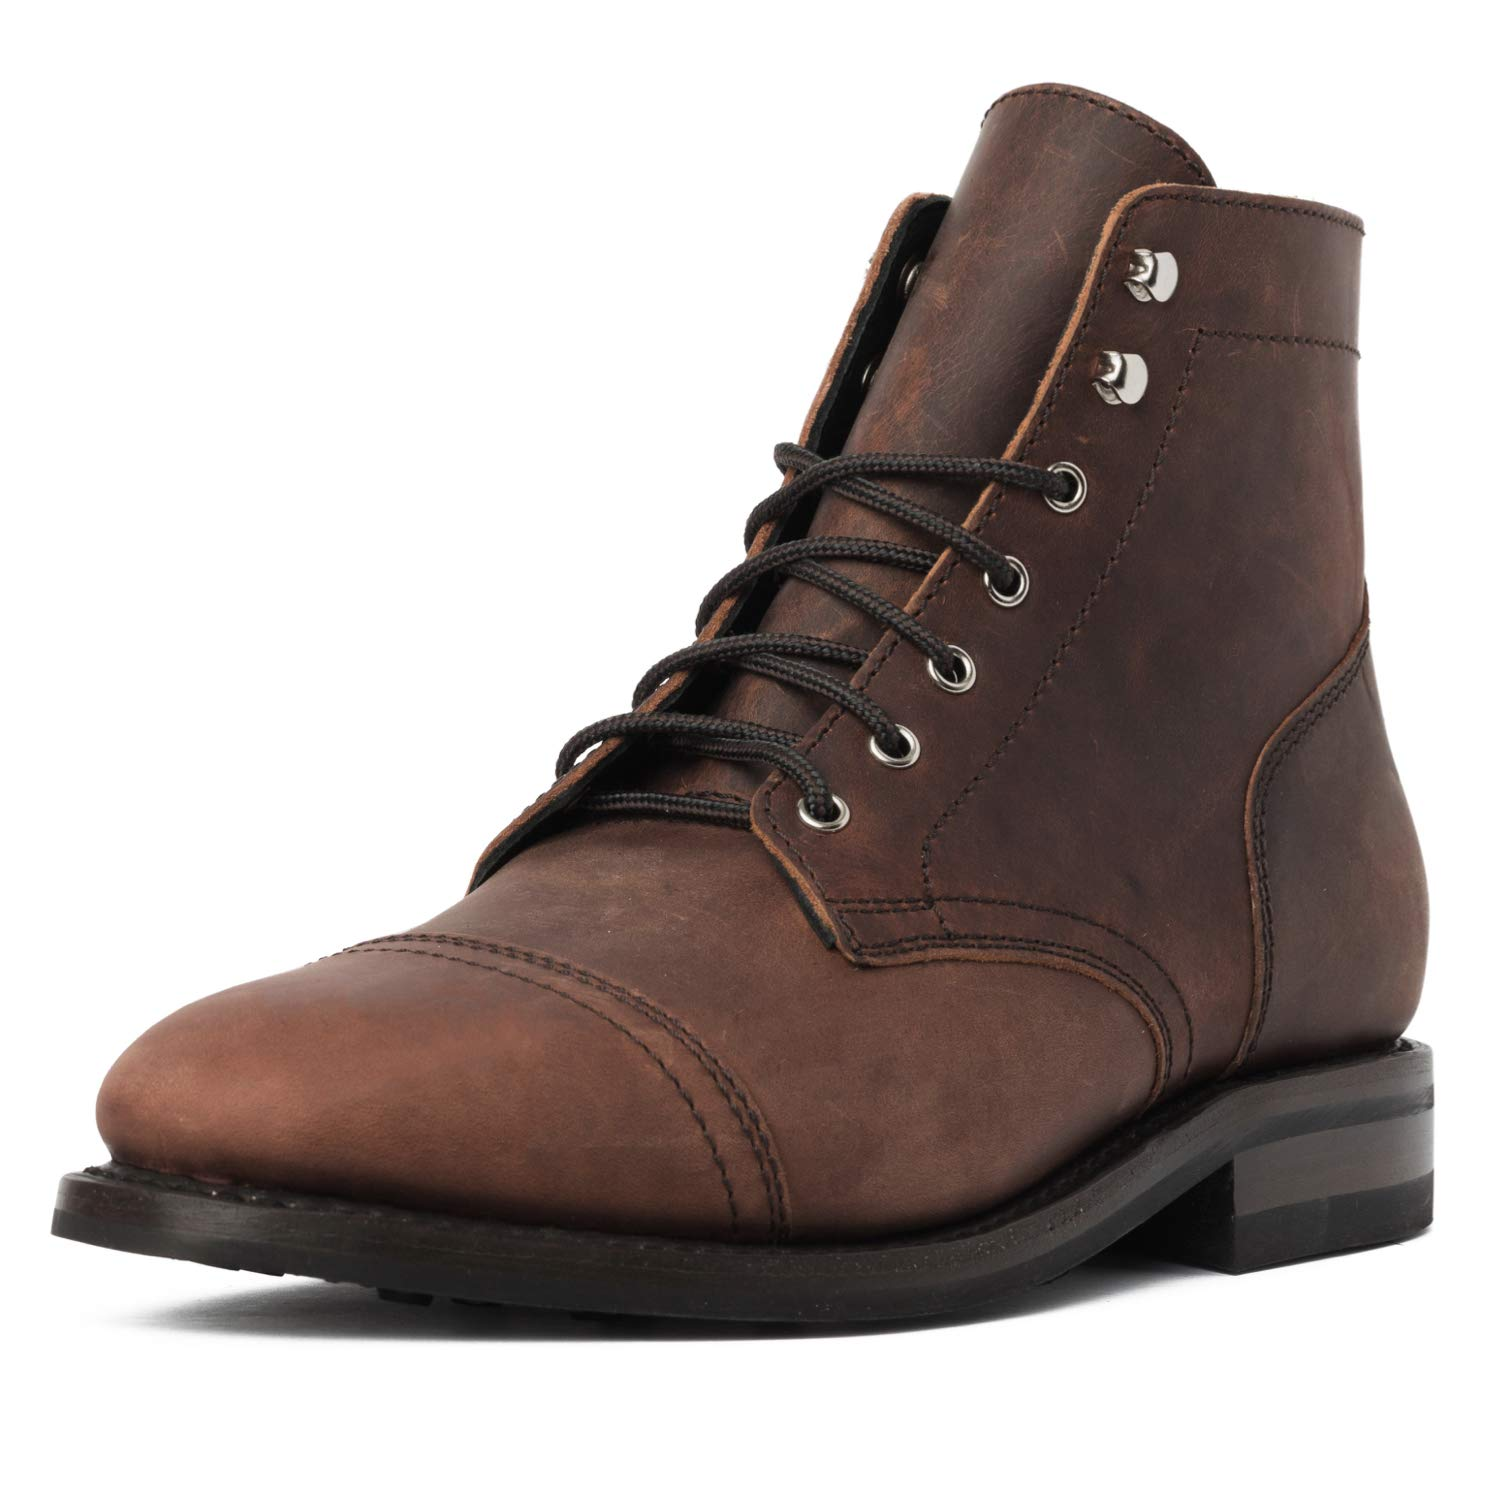 Thursday Boot Company Men's Rugged & Resilient Captain 6'' Lace-up Boot, Arizona Adobe